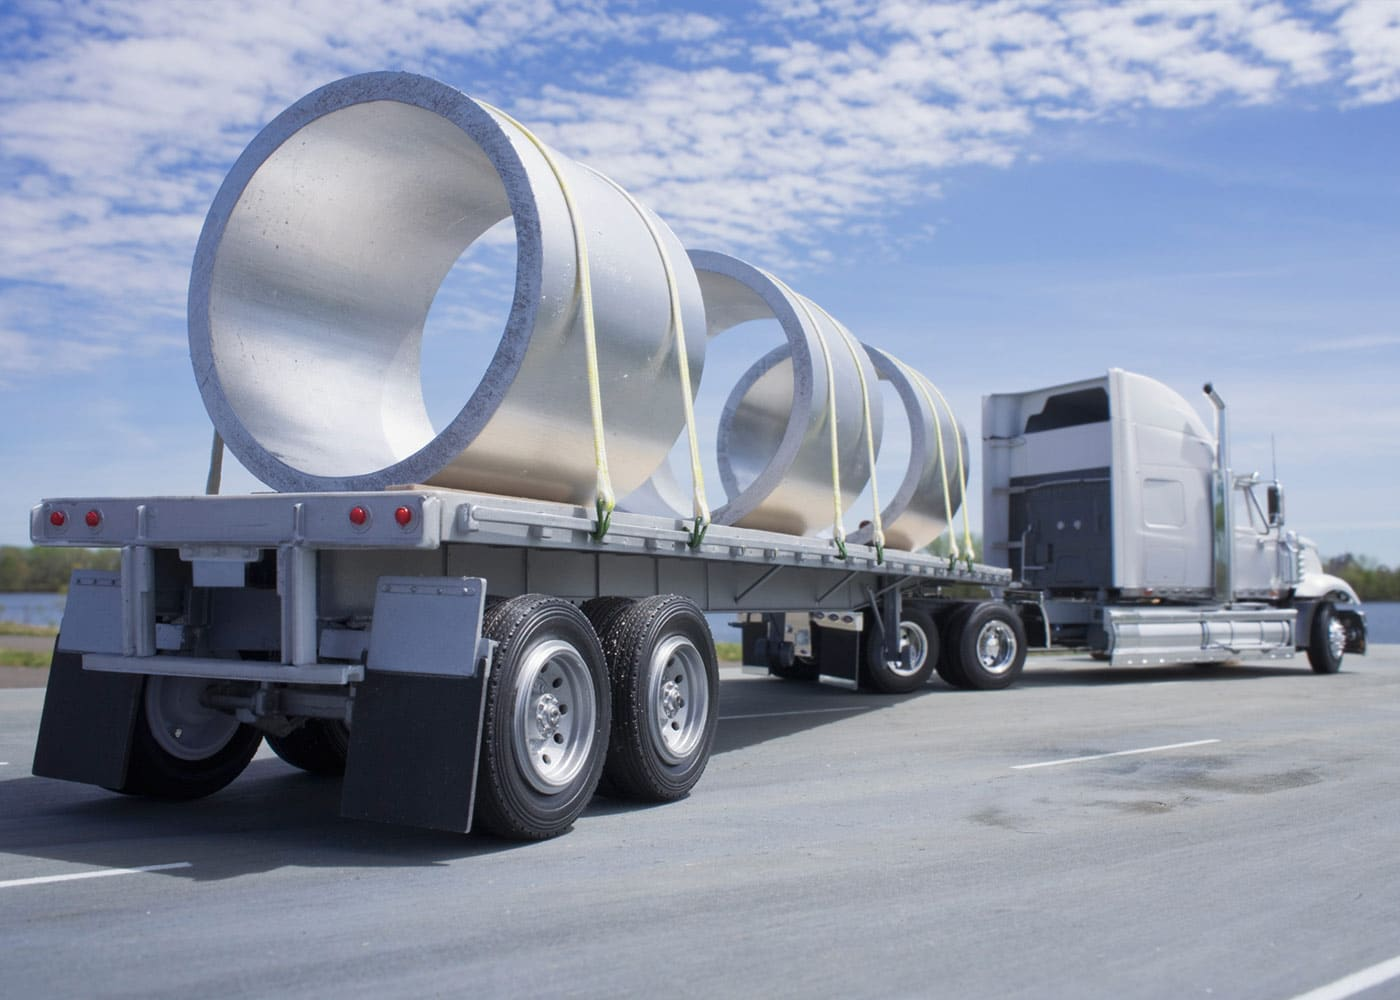 Truck transporting big steel cylinders